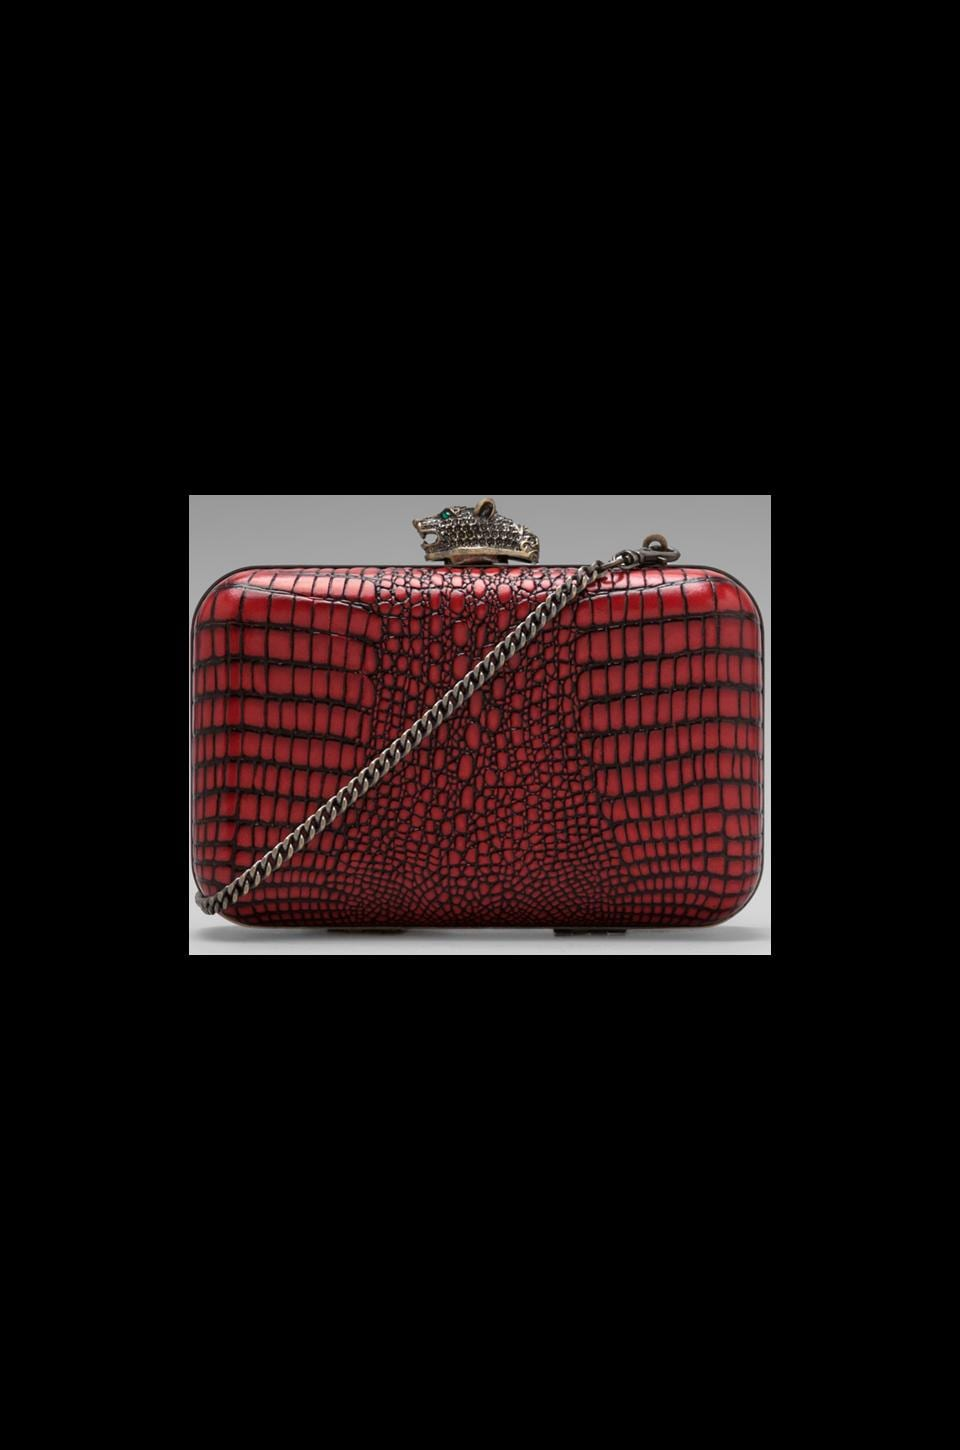 House of Harlow 1960 House of Harlow Dylan Clutch in Chili Red Matte Croc